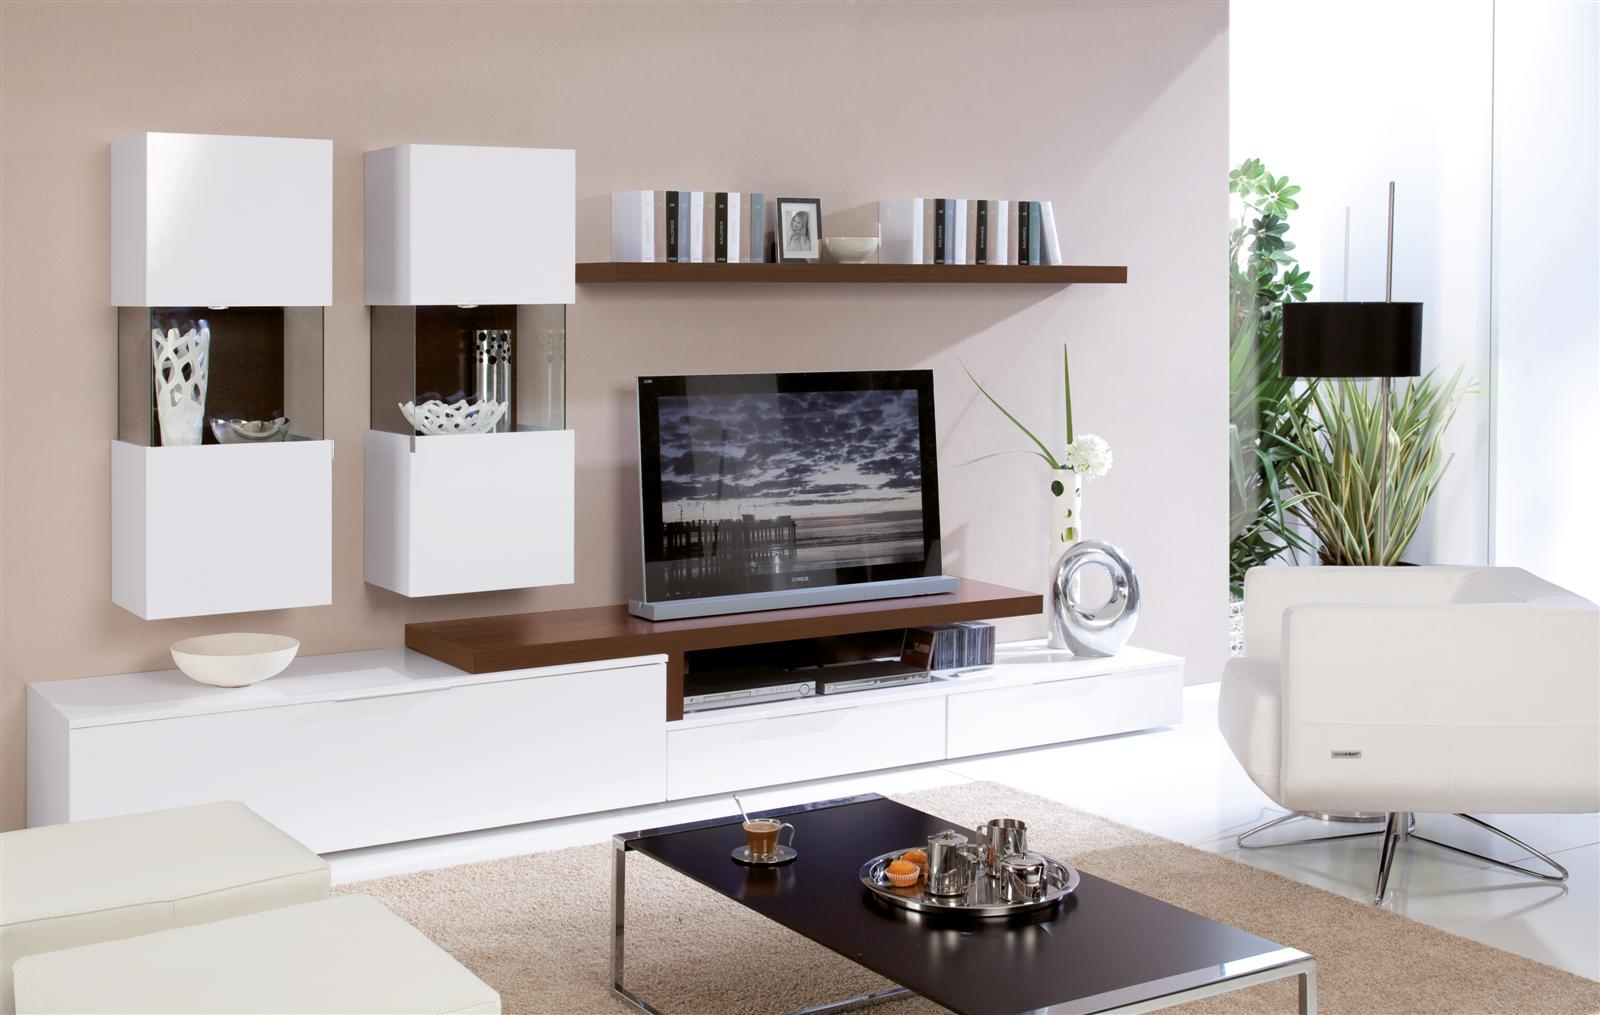 20 modern tv unit design ideas for bedroom living room for Interior design ideas living room tv unit